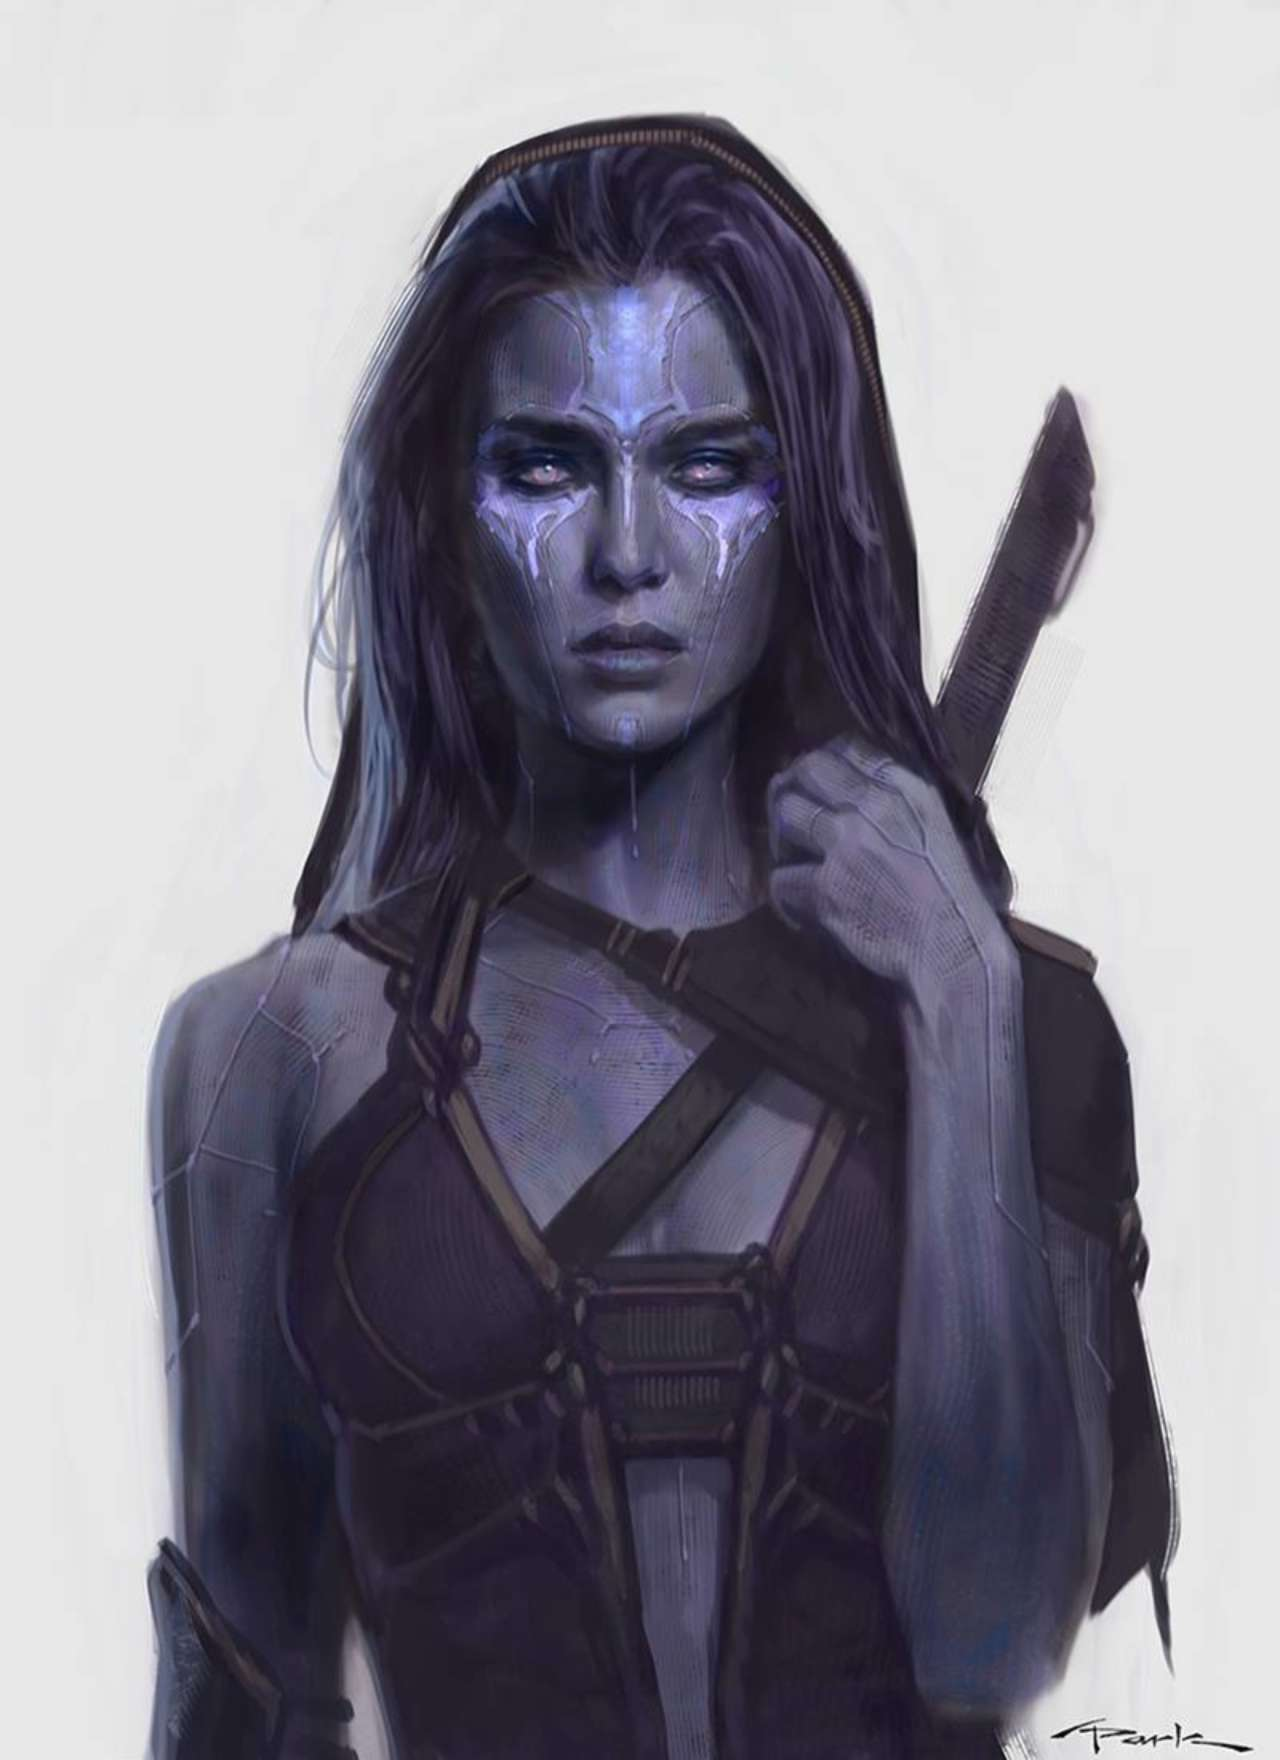 purple-gamora-104613-1280x0.jpg